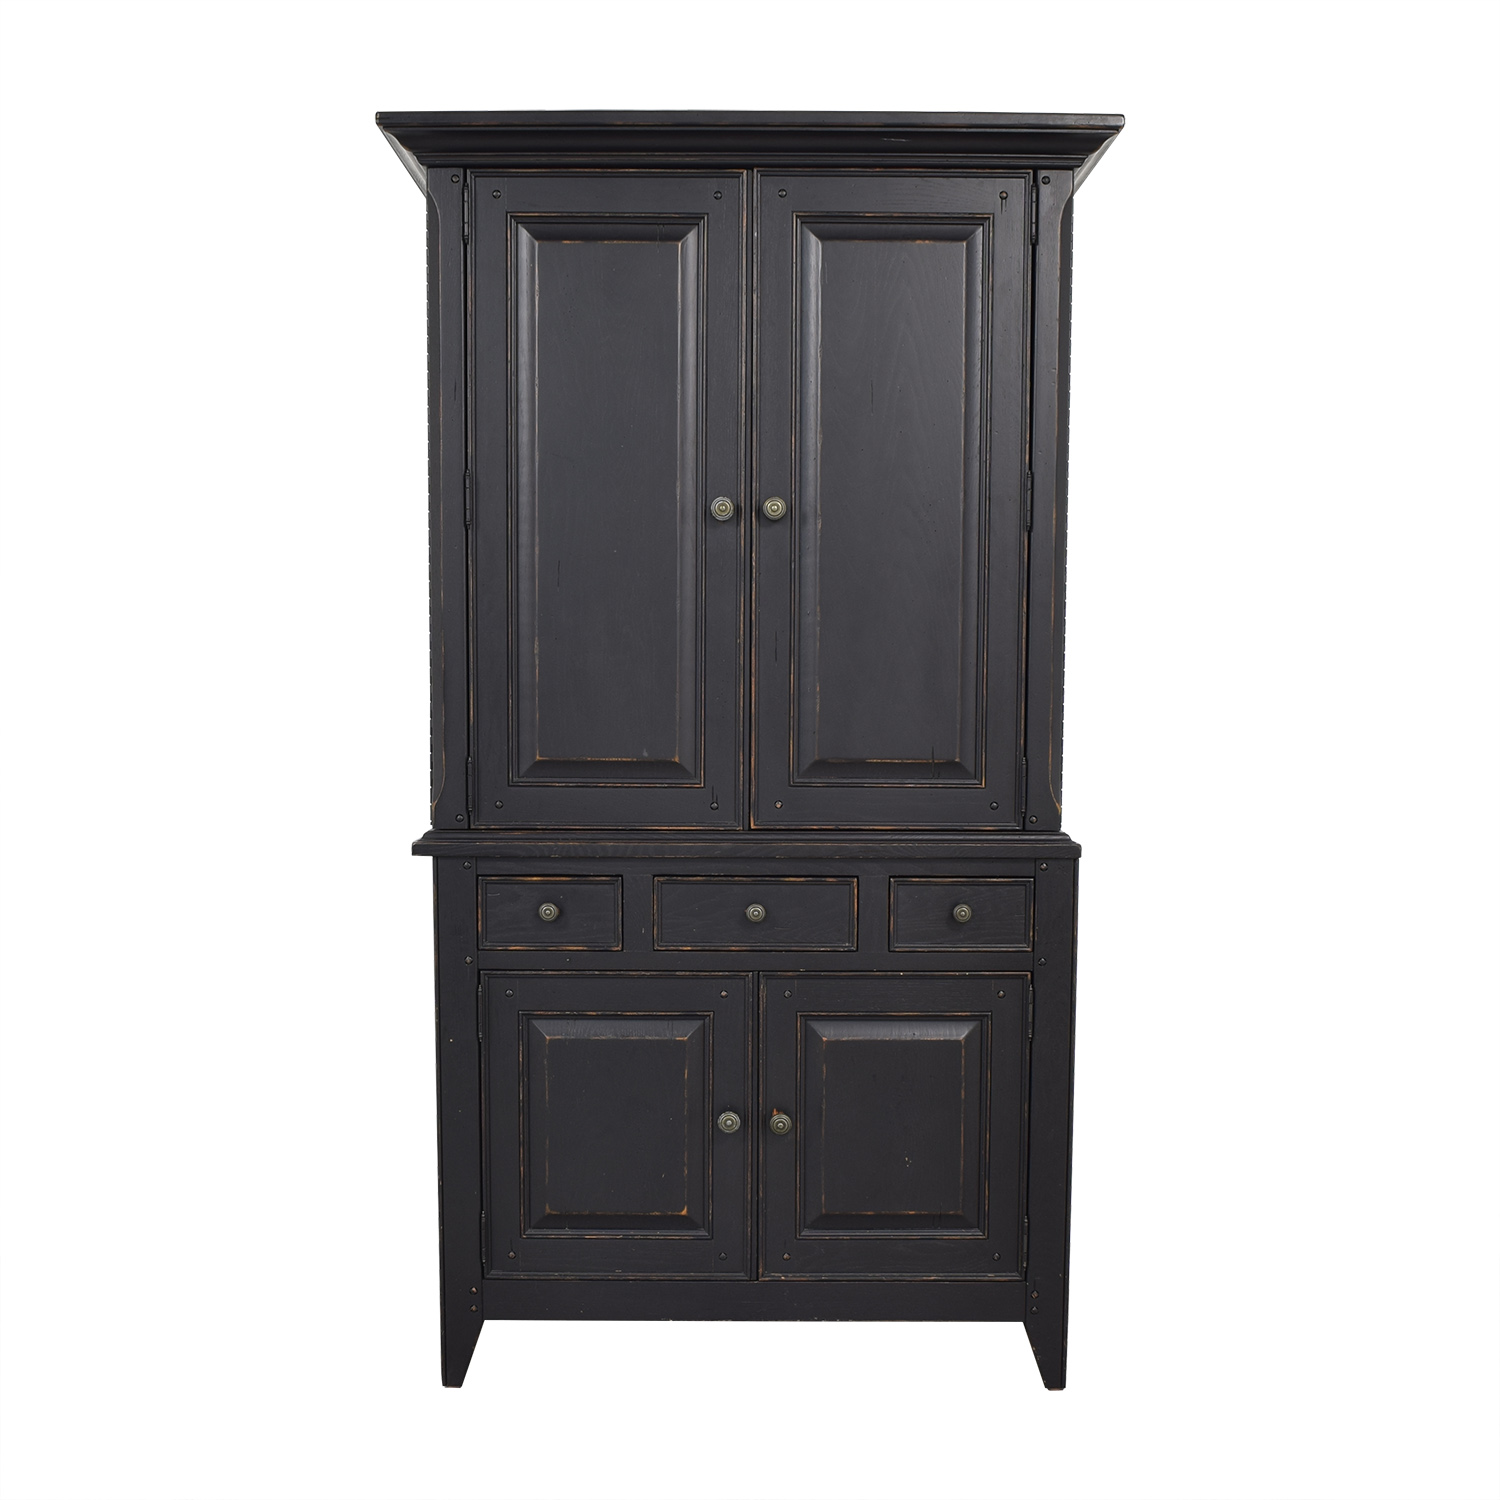 Thomasville Thomasville Urban Retreat Armoire ct